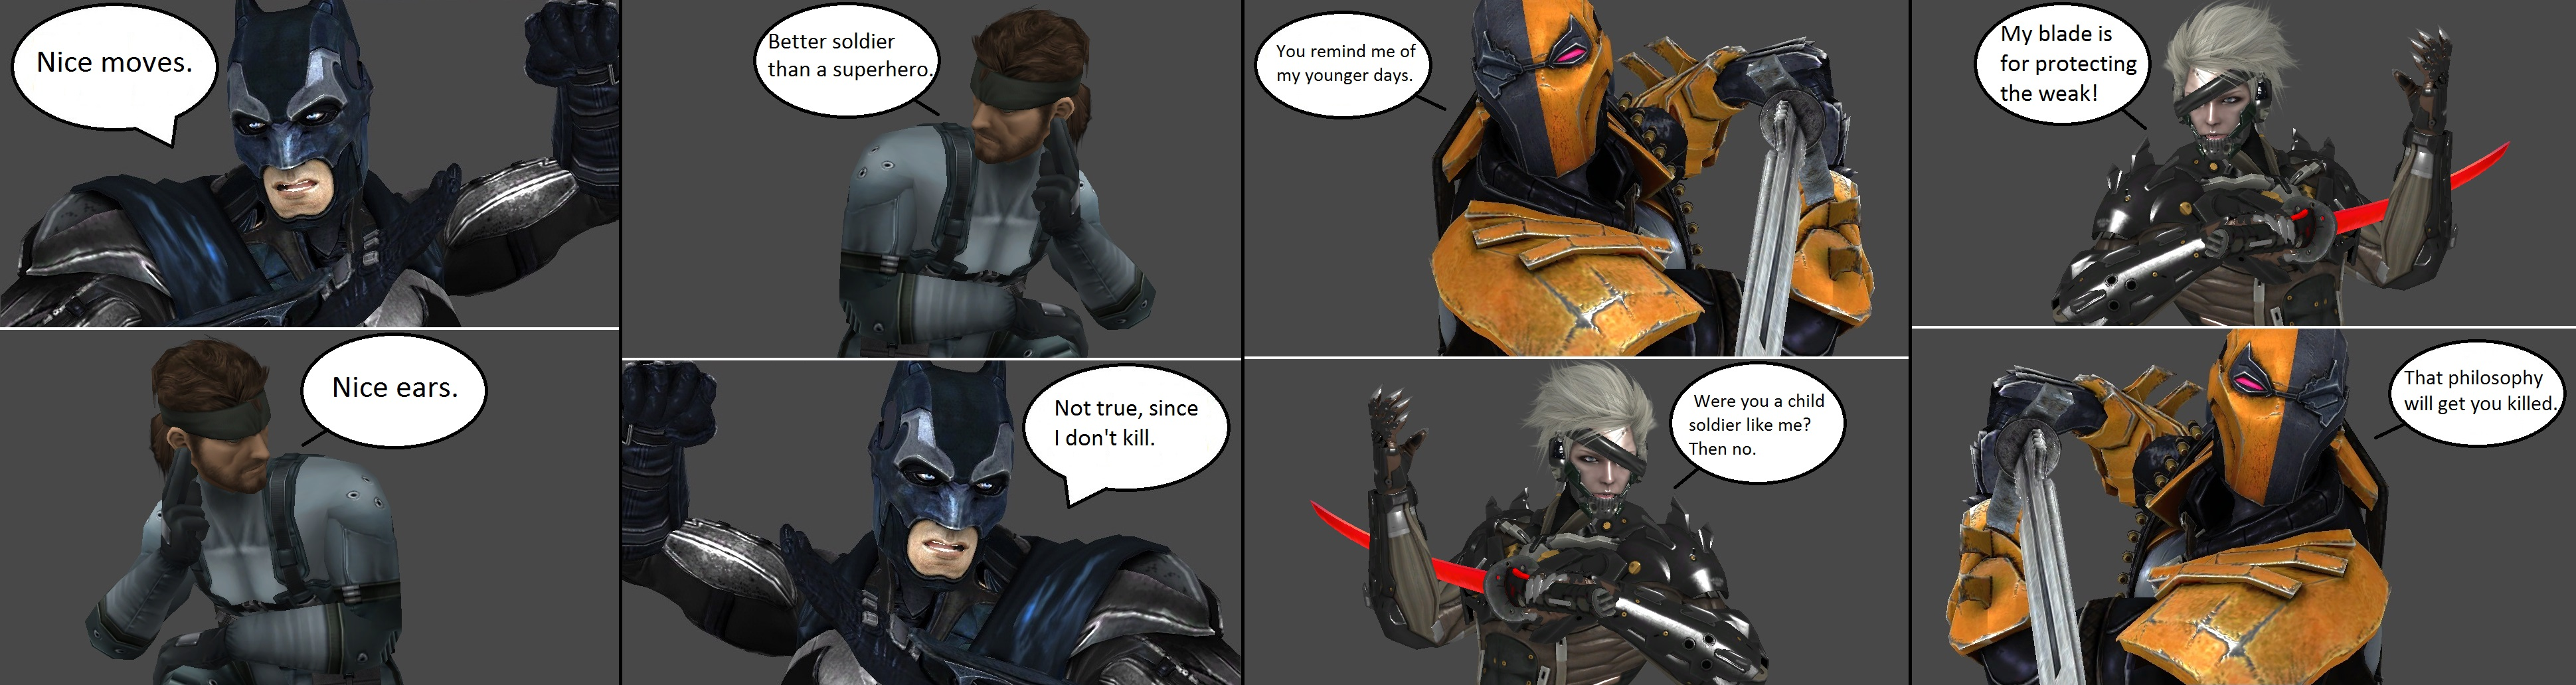 How To Draw Deathstroke From Injustice Injustice: Batman vs S...